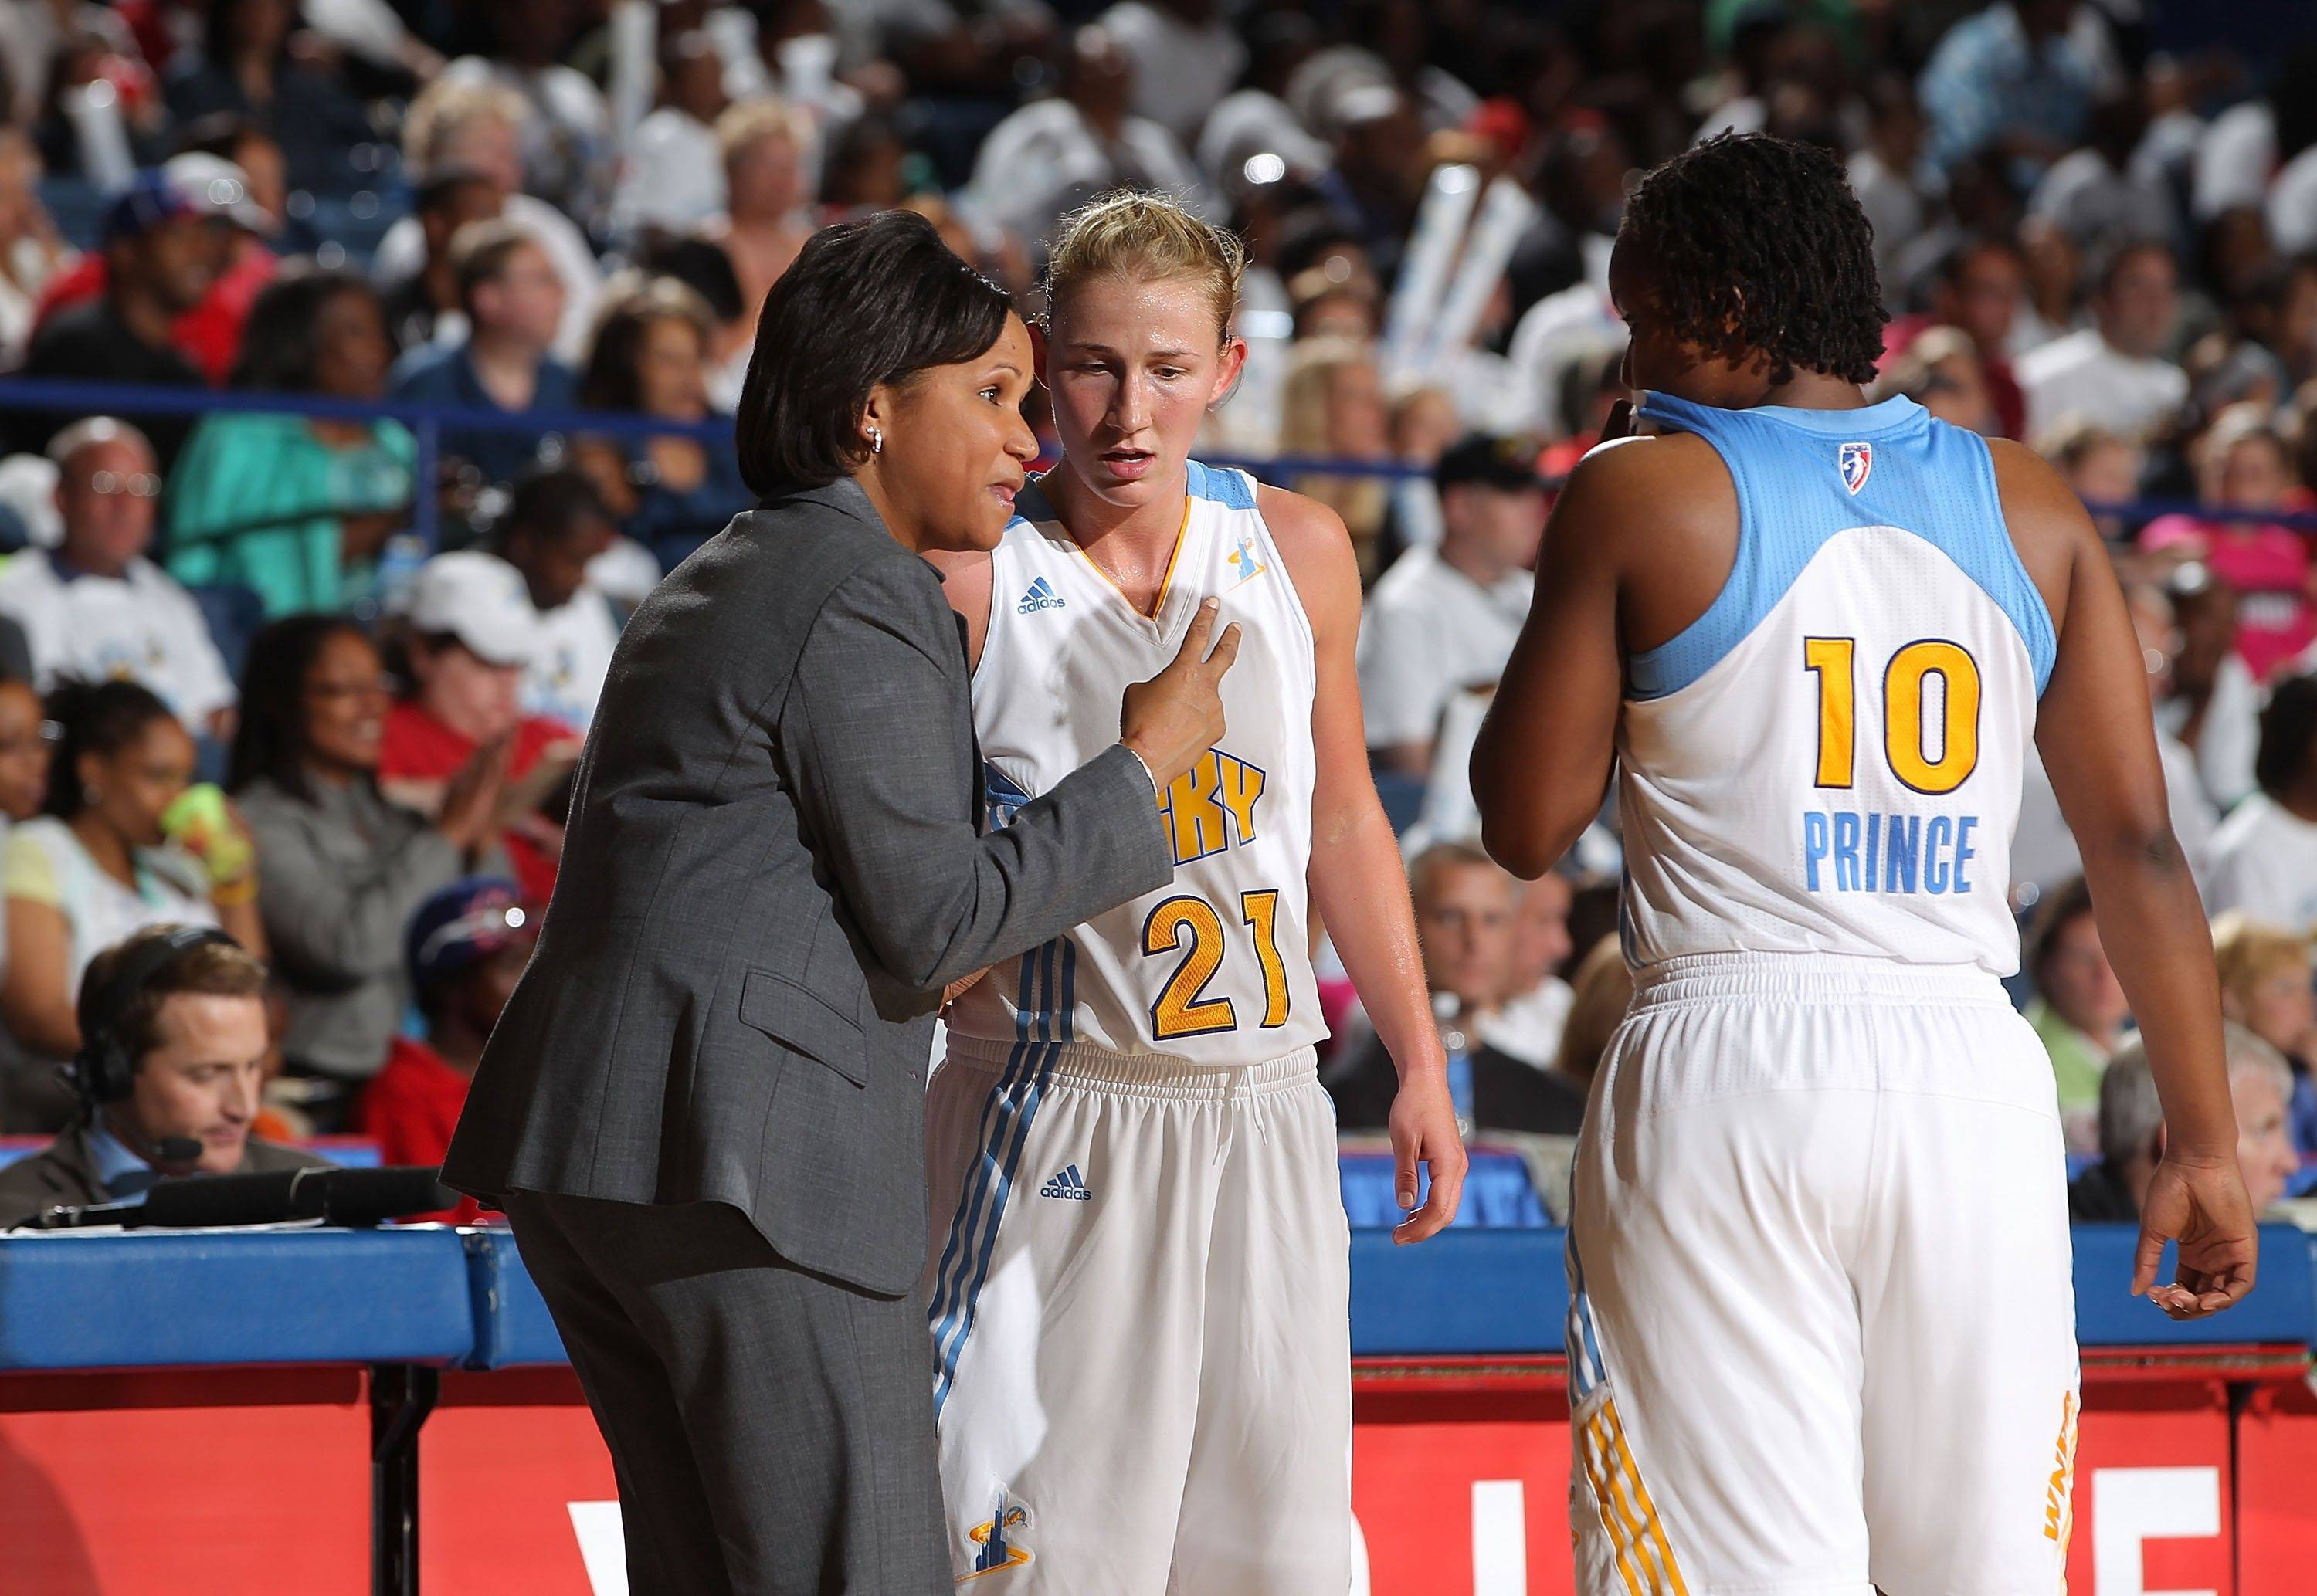 Head coach Pokey Chatman of the Chicago Sky will be back for her second WNBA season when the Sky begins play in May. She'll need guards Courtney Vandersloot (21) and Epiphany Prince (10) to help run the offense through all-stars Sylvia Fowles and Swin Cash.